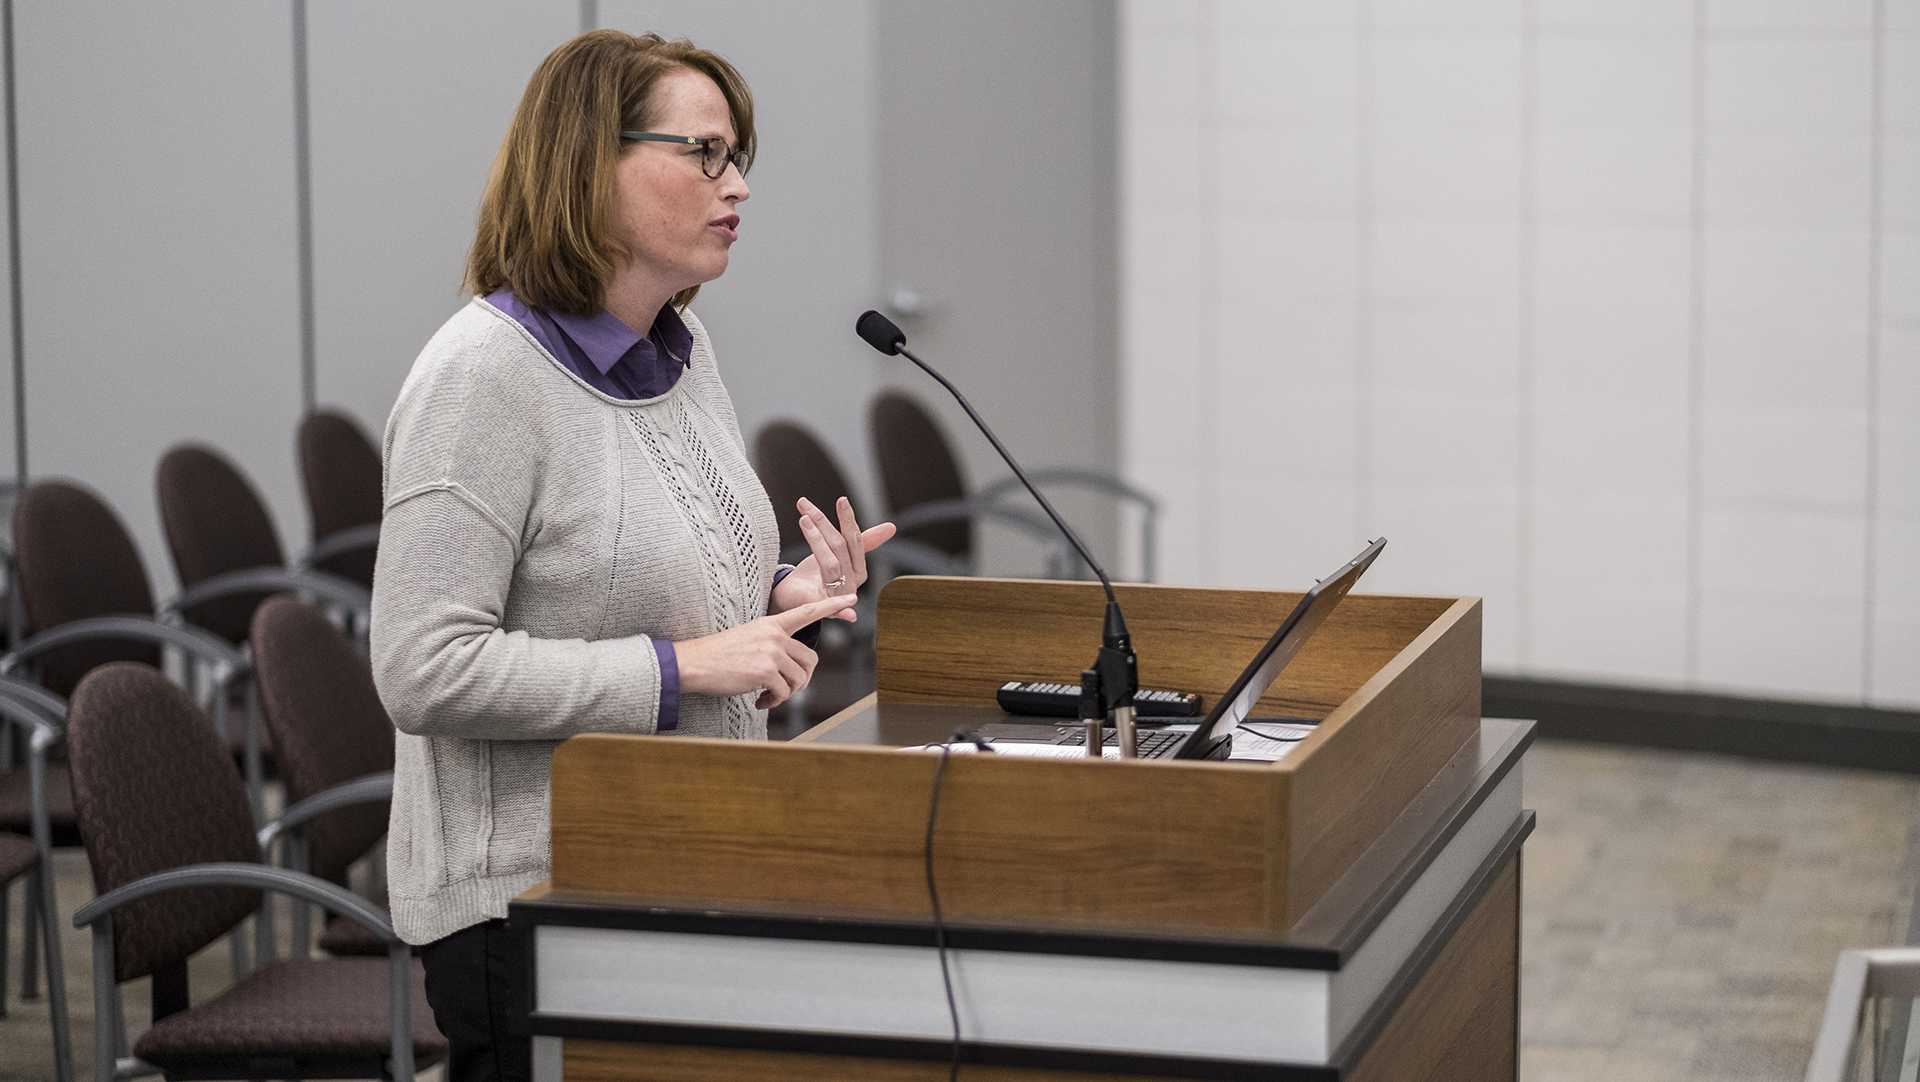 Tracy Hightshoe addresses the council regarding an application for a housing grant during a city council meeting on Tuesday, Oct. 17, 2017. (Nick Rohlman/The Daily Iowan)